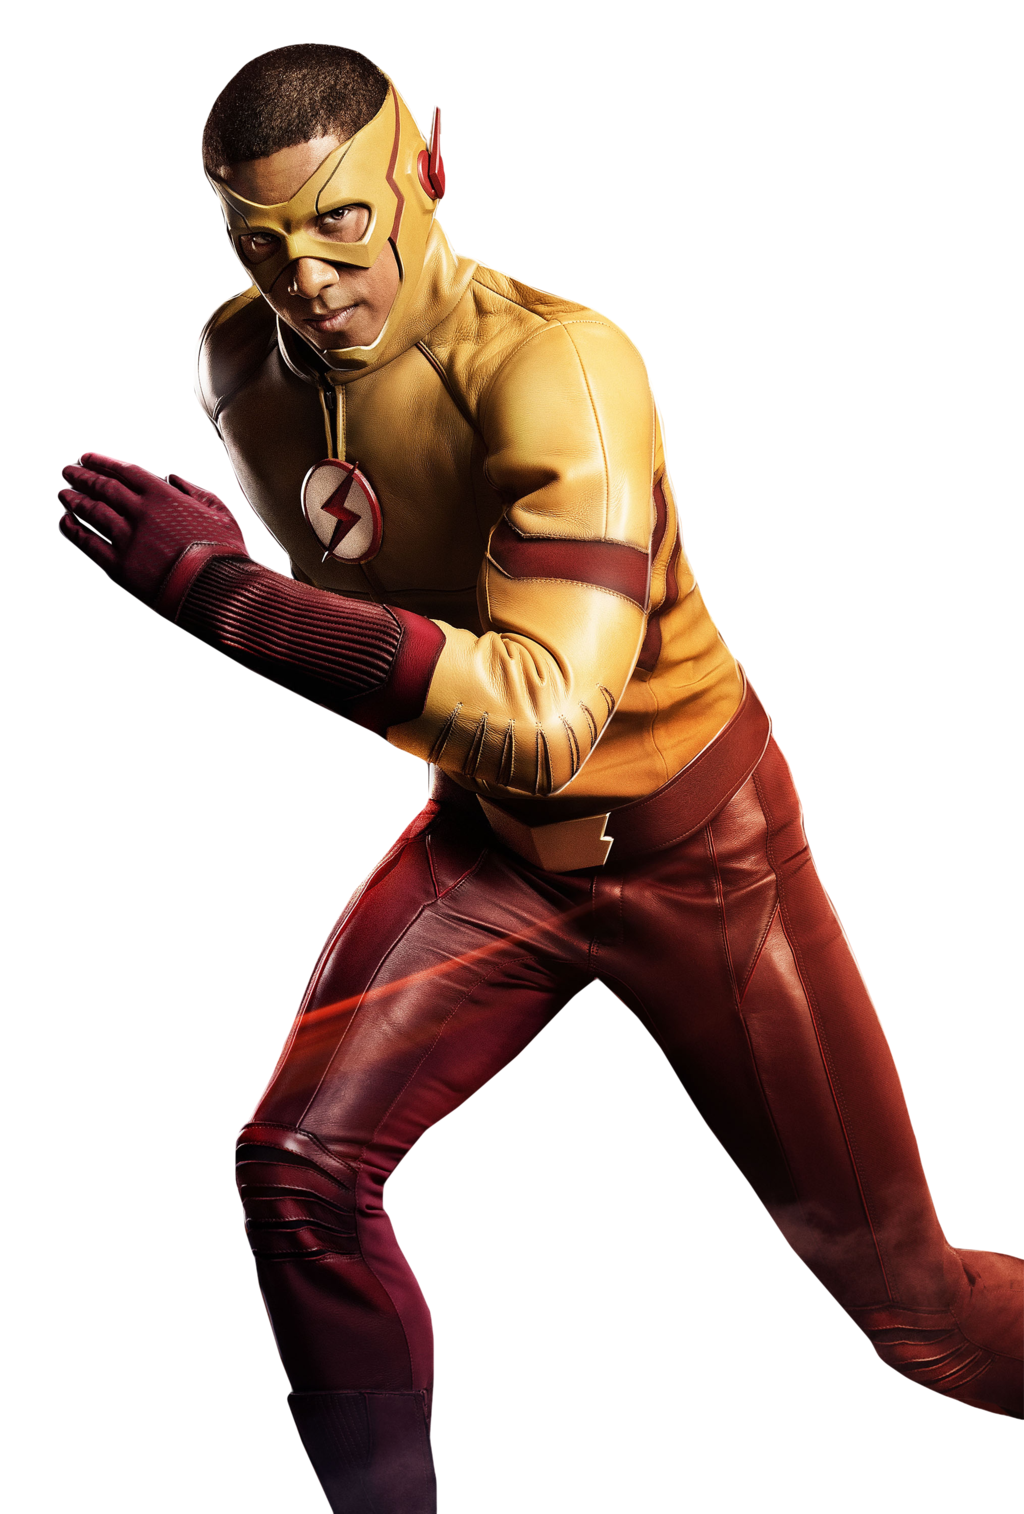 Cw flash png. The images in collection